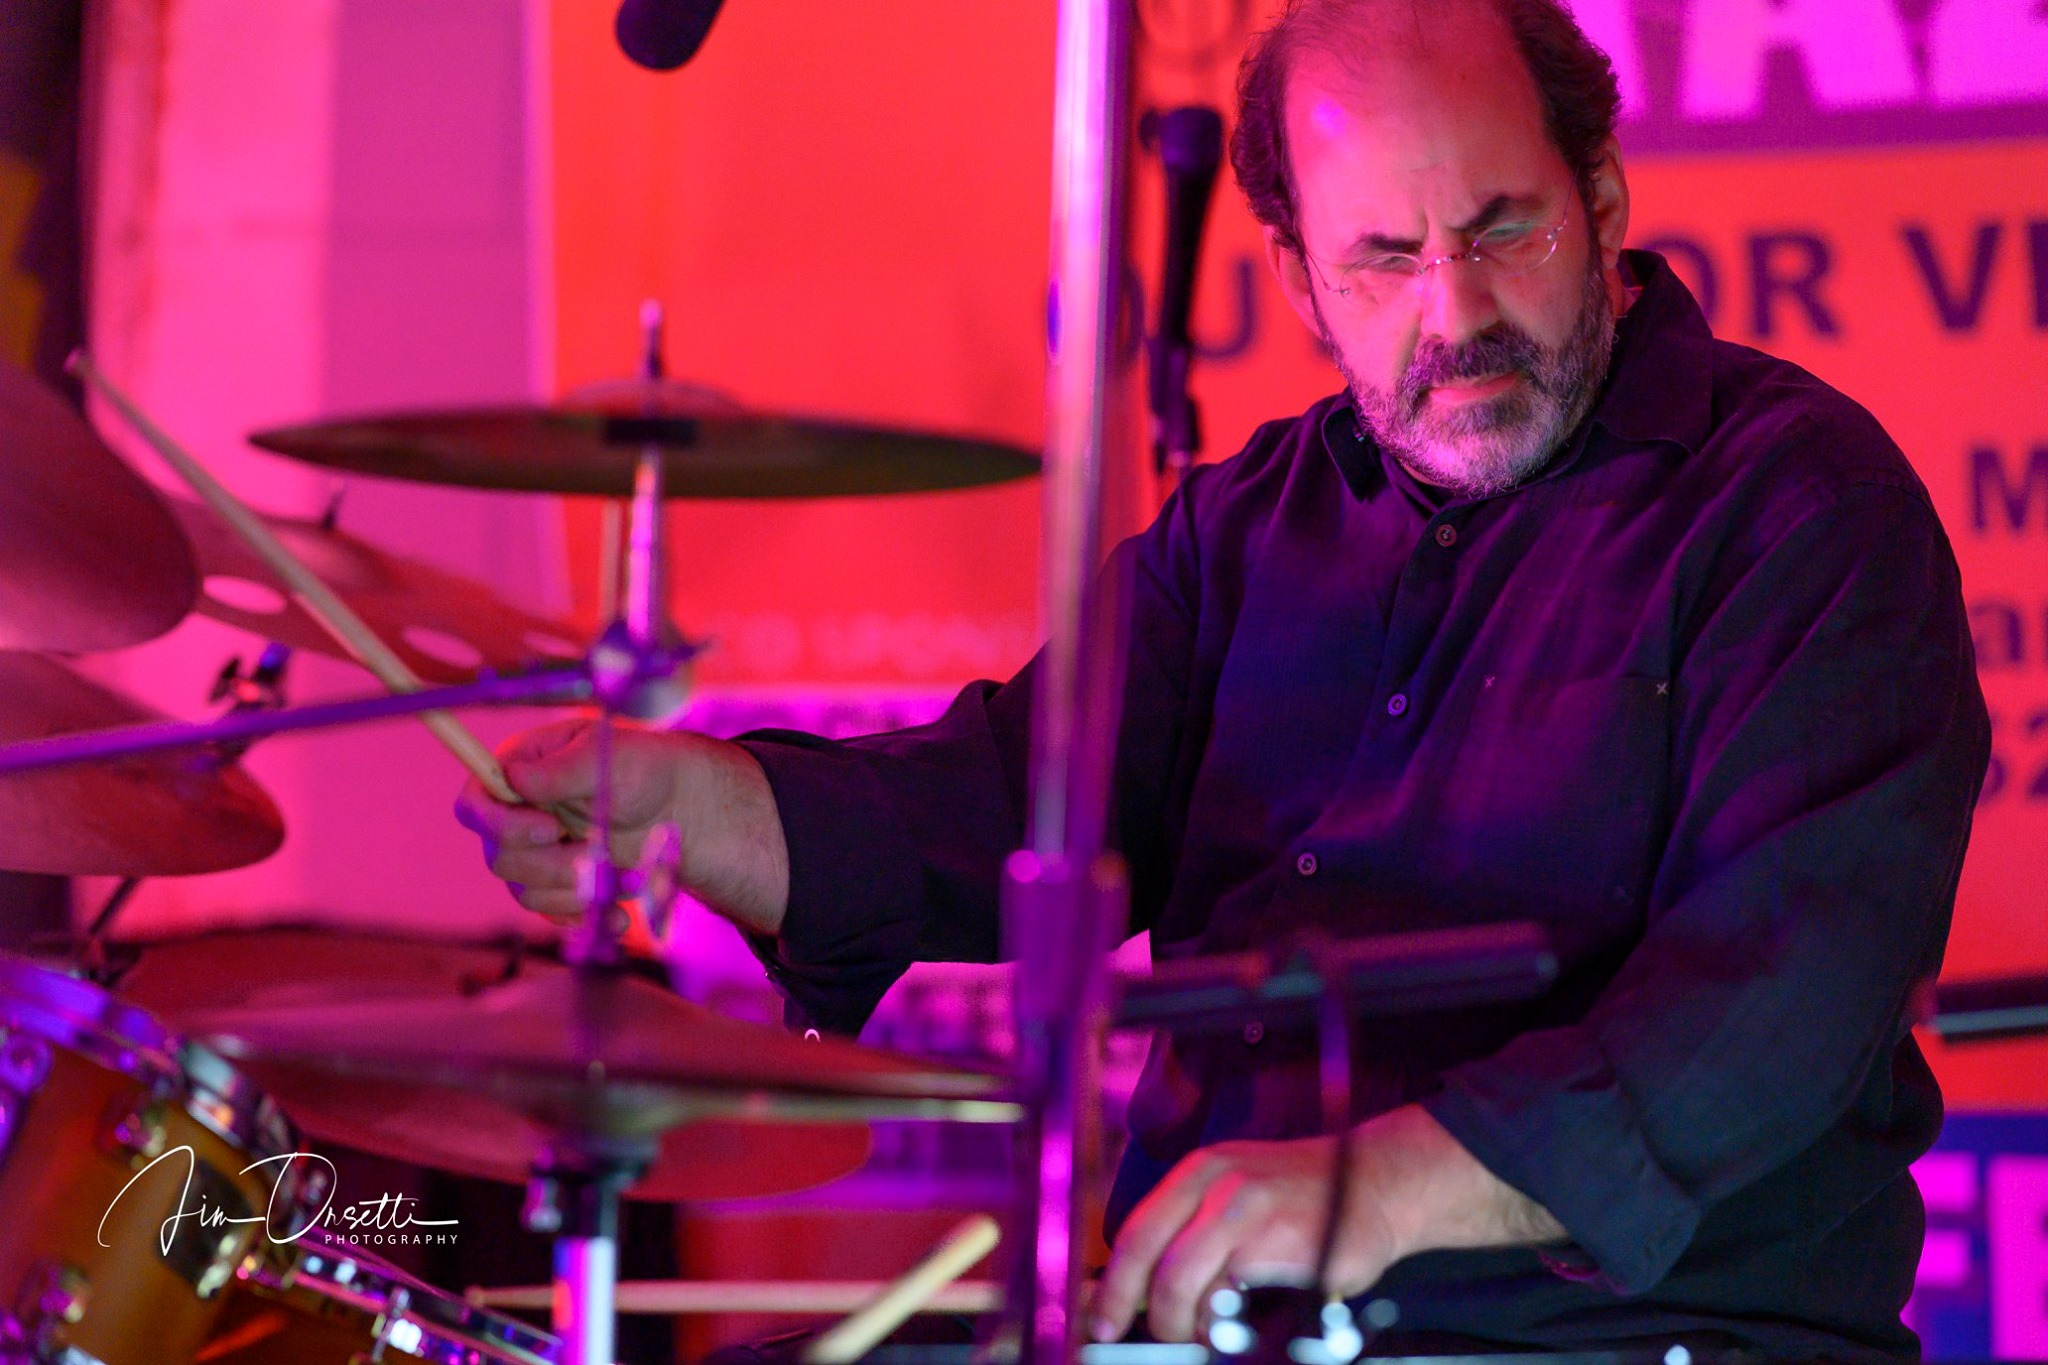 Jon Krosnick at the 2nd Annual 7 Mile House Jazz Fest 2019